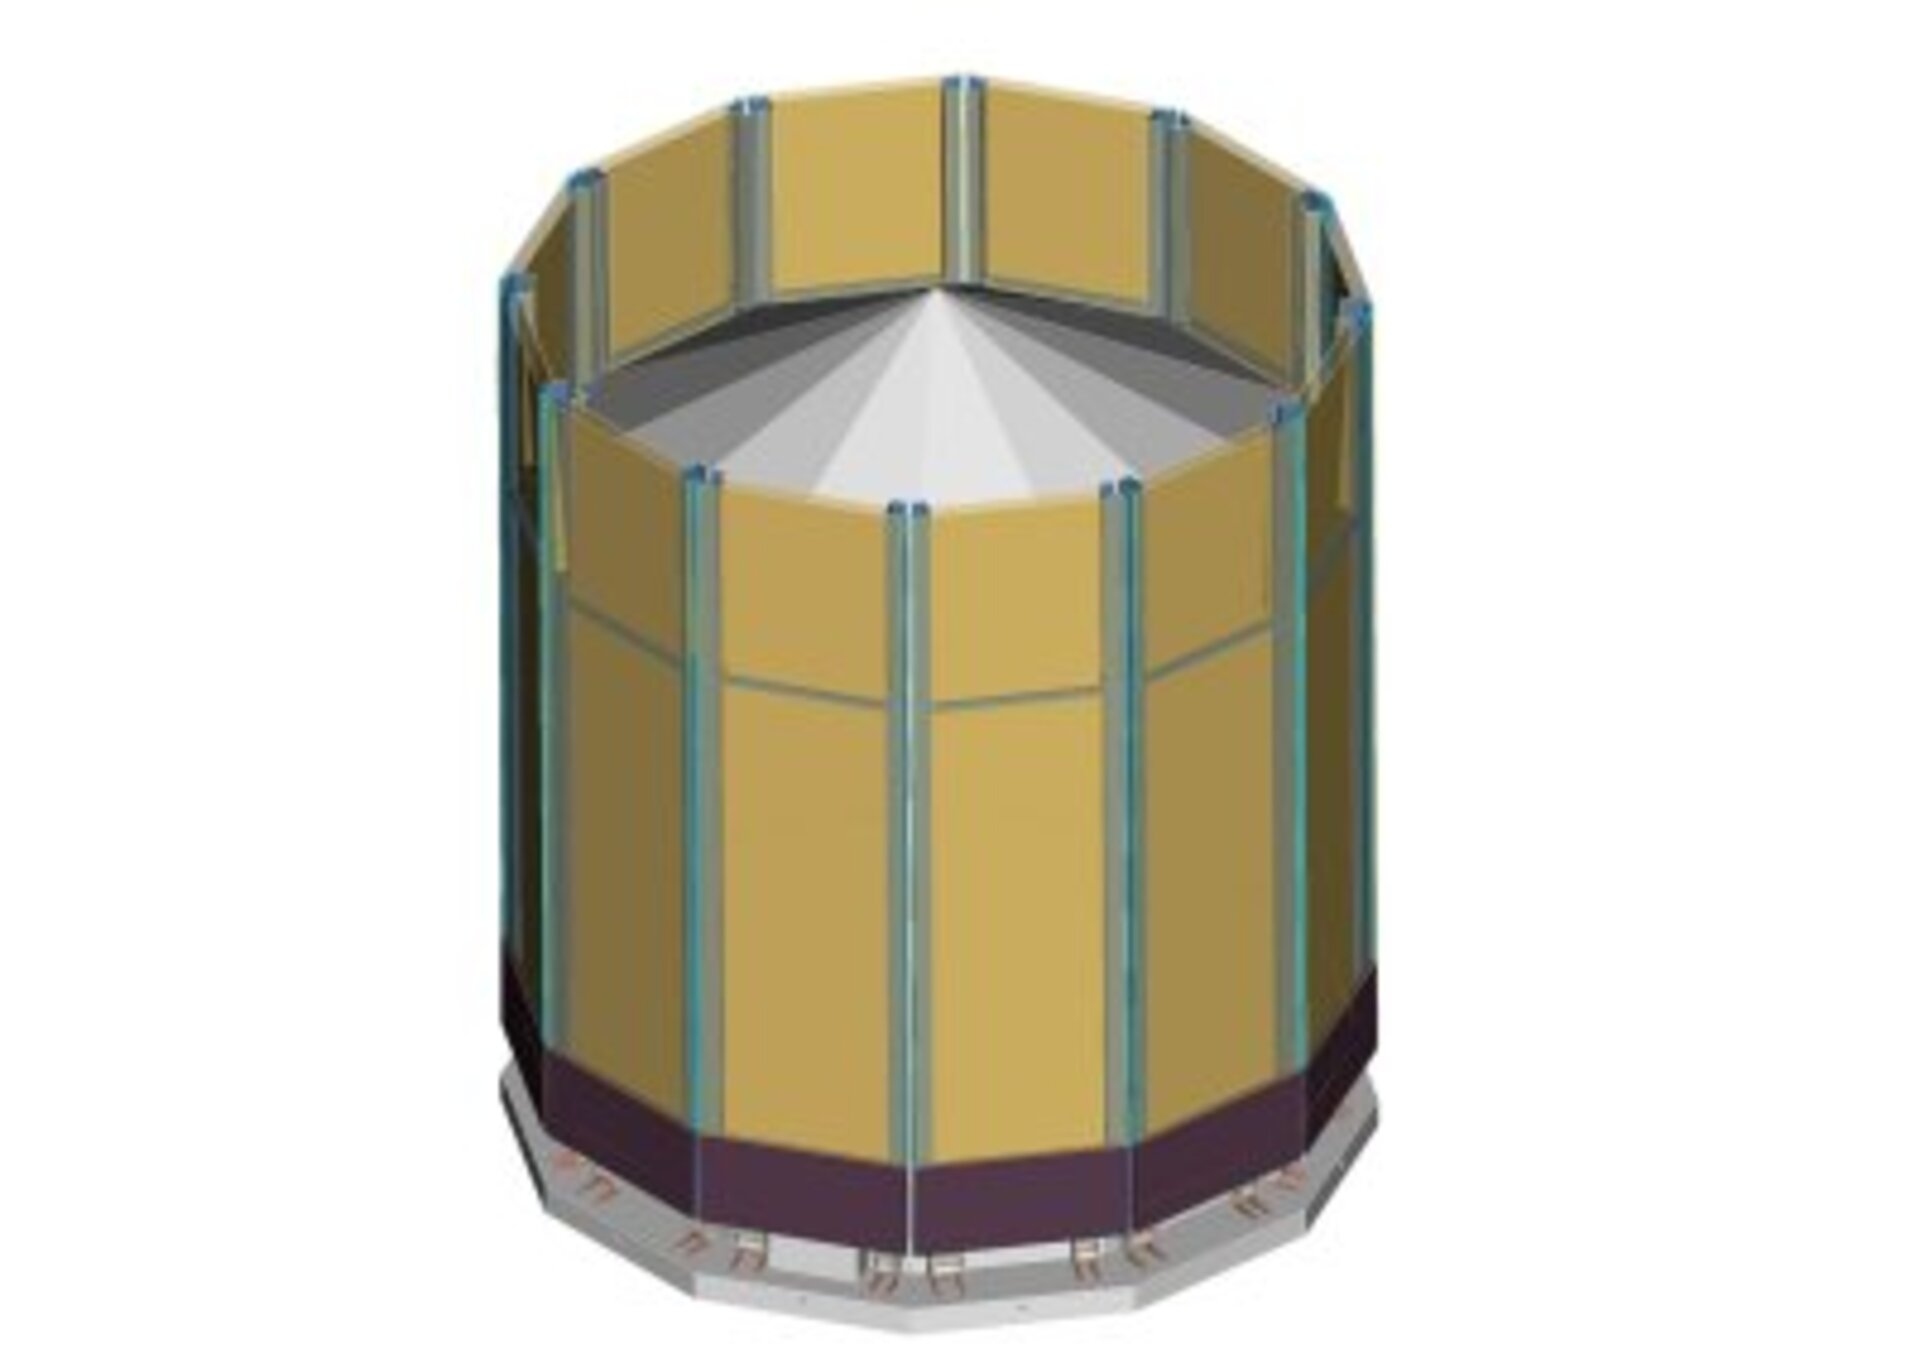 Artist's impression of Gaia's sunshield (stowed)